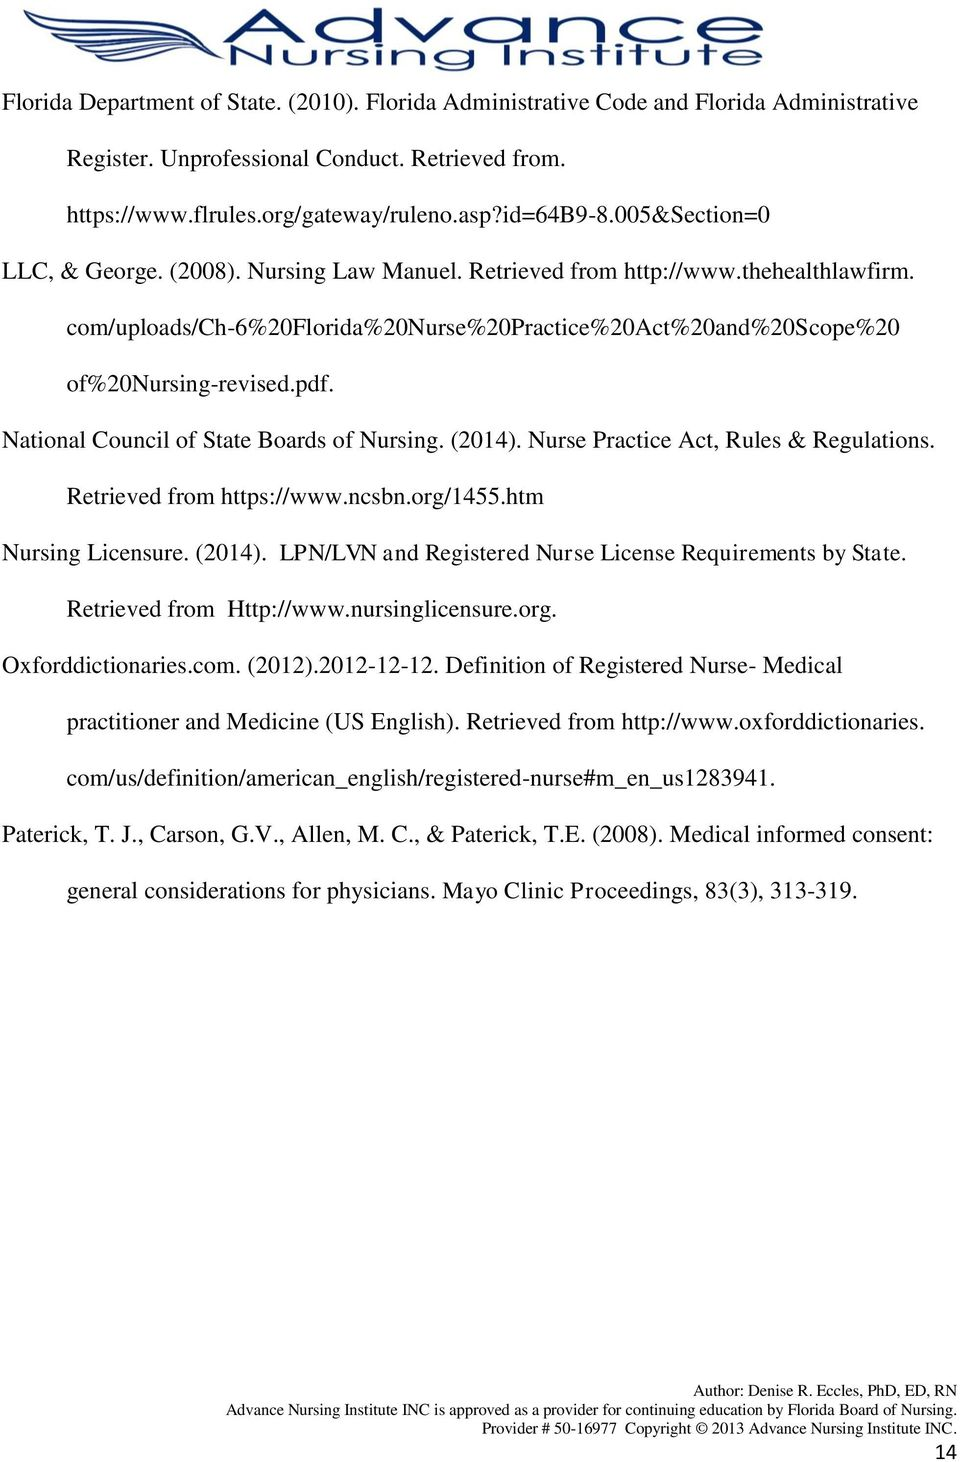 National Council of State Boards of Nursing. (2014). Nurse Practice Act, Rules & Regulations. Retrieved from https://www.ncsbn.org/1455.htm Nursing Licensure. (2014). LPN/LVN and Registered Nurse License Requirements by State.